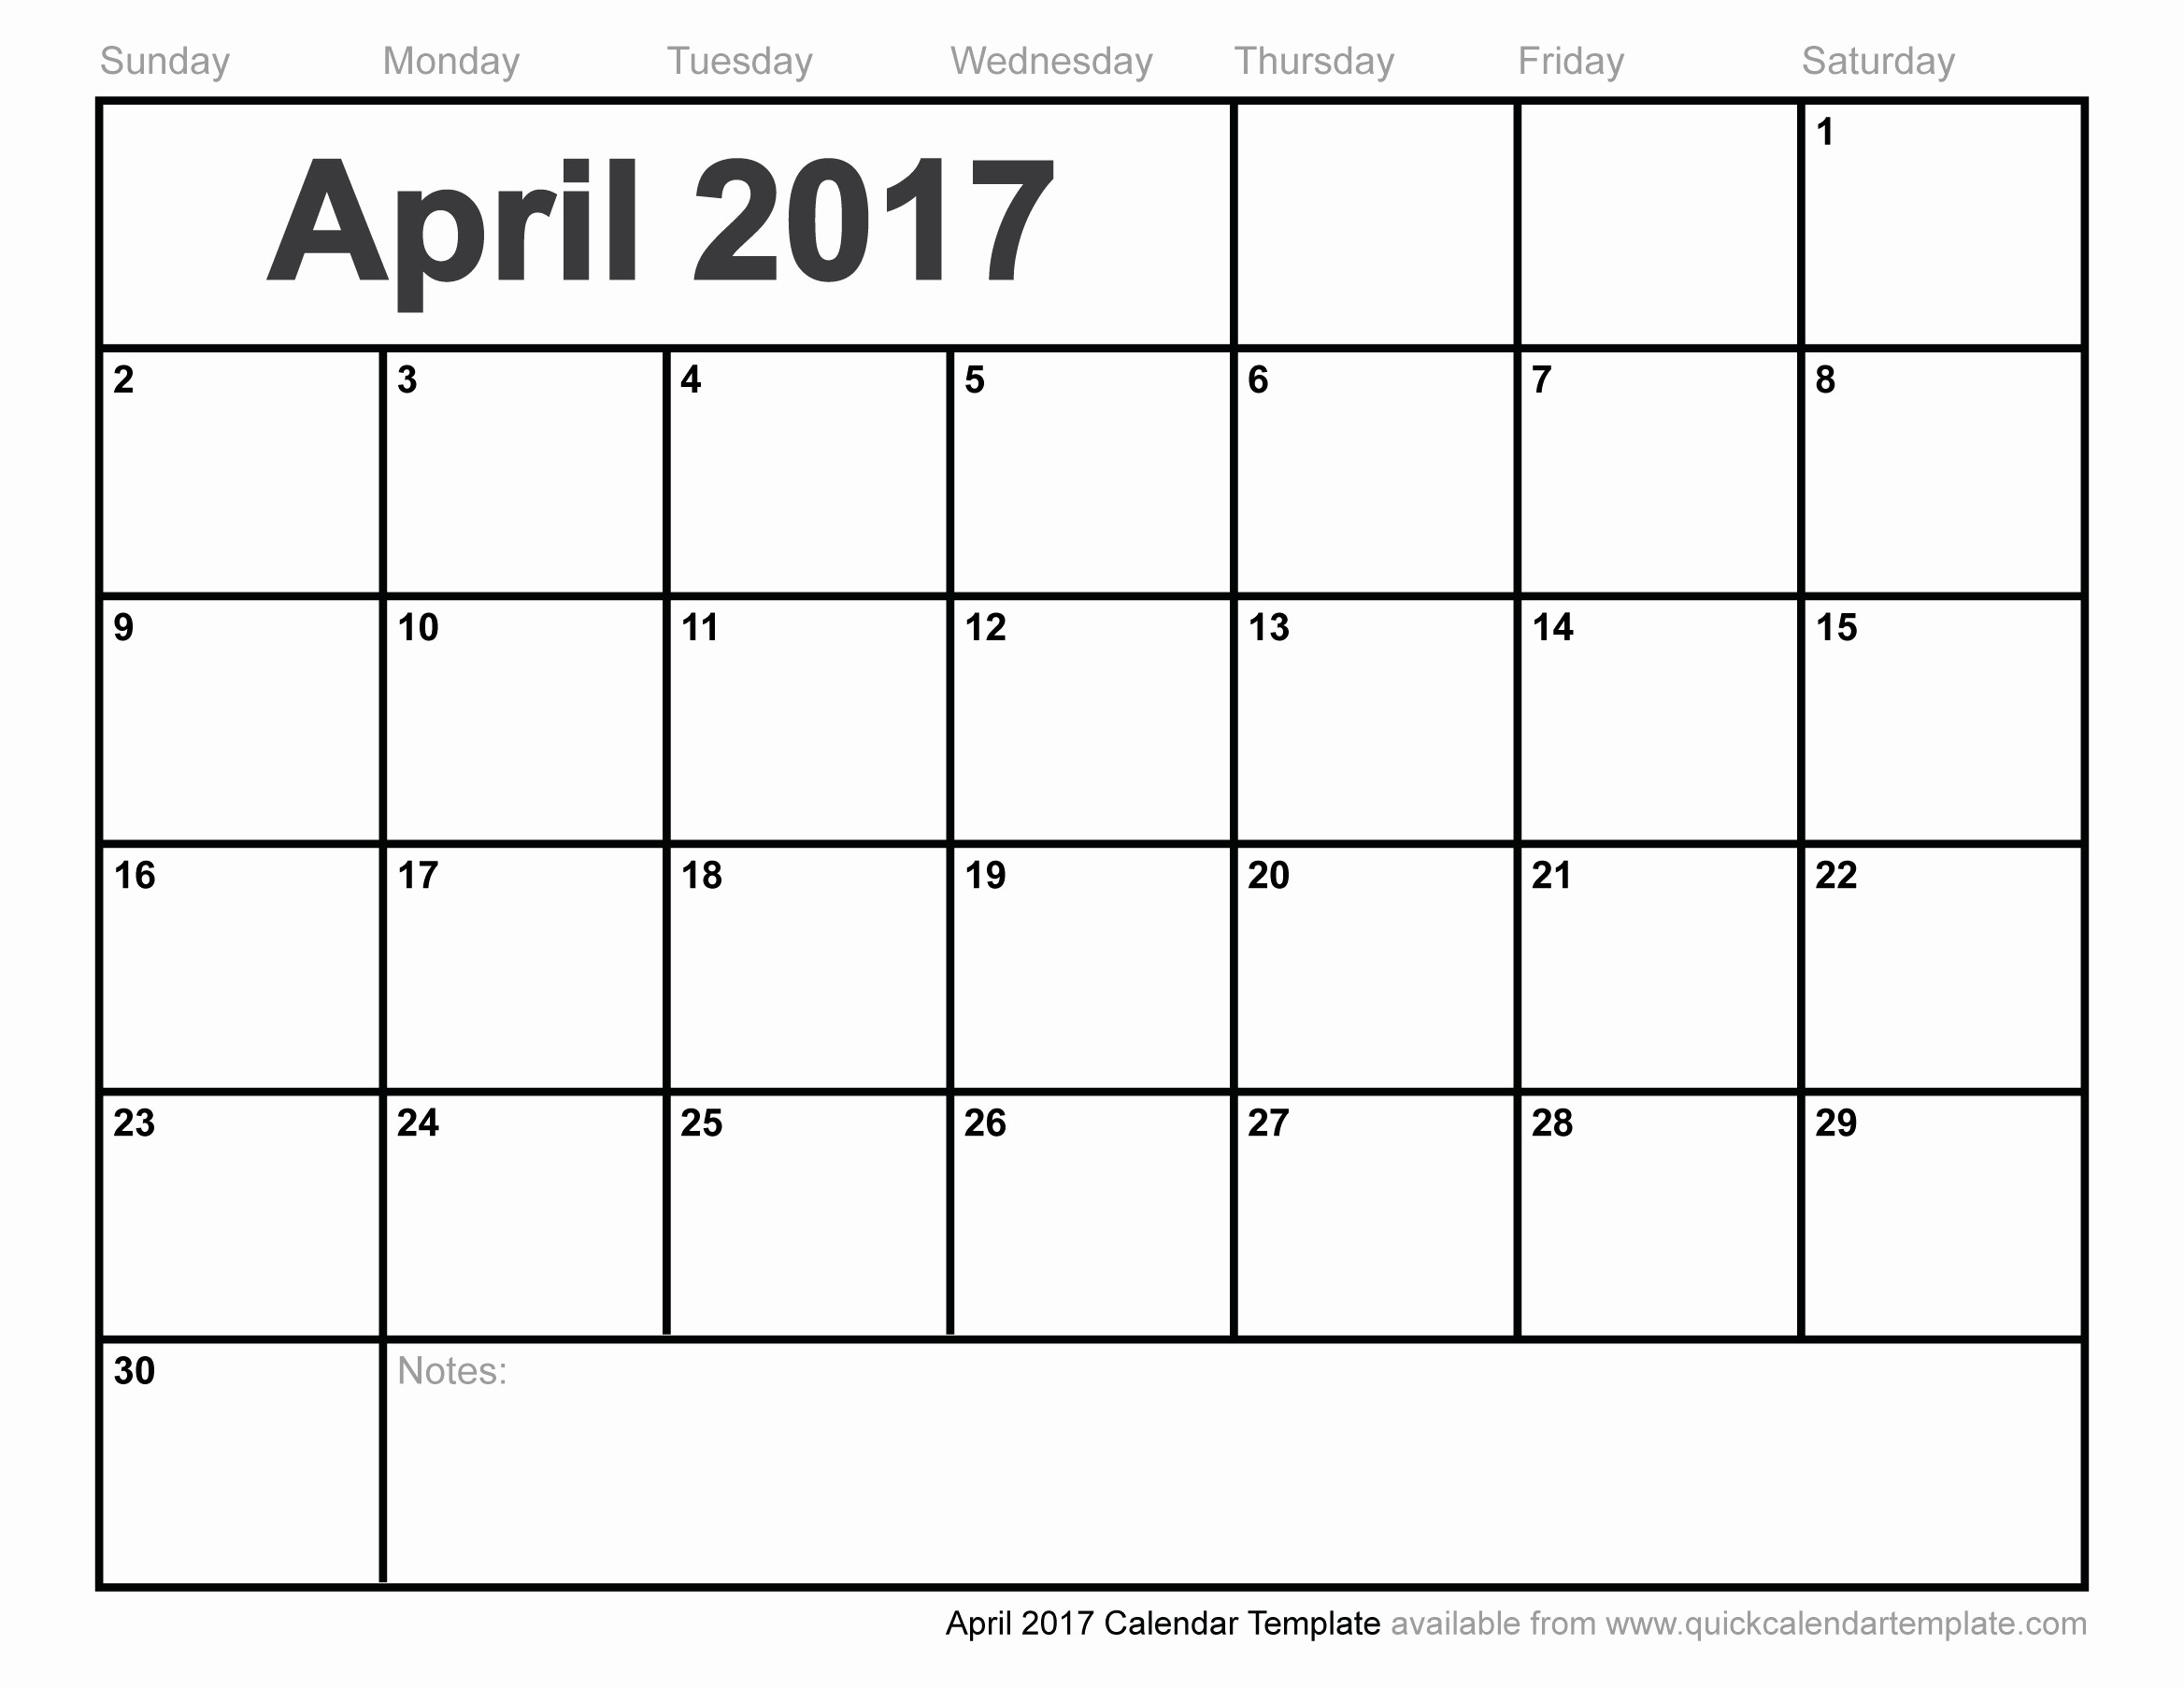 Free Blank Printable Calendar 2017 New Blank April 2017 Calendar